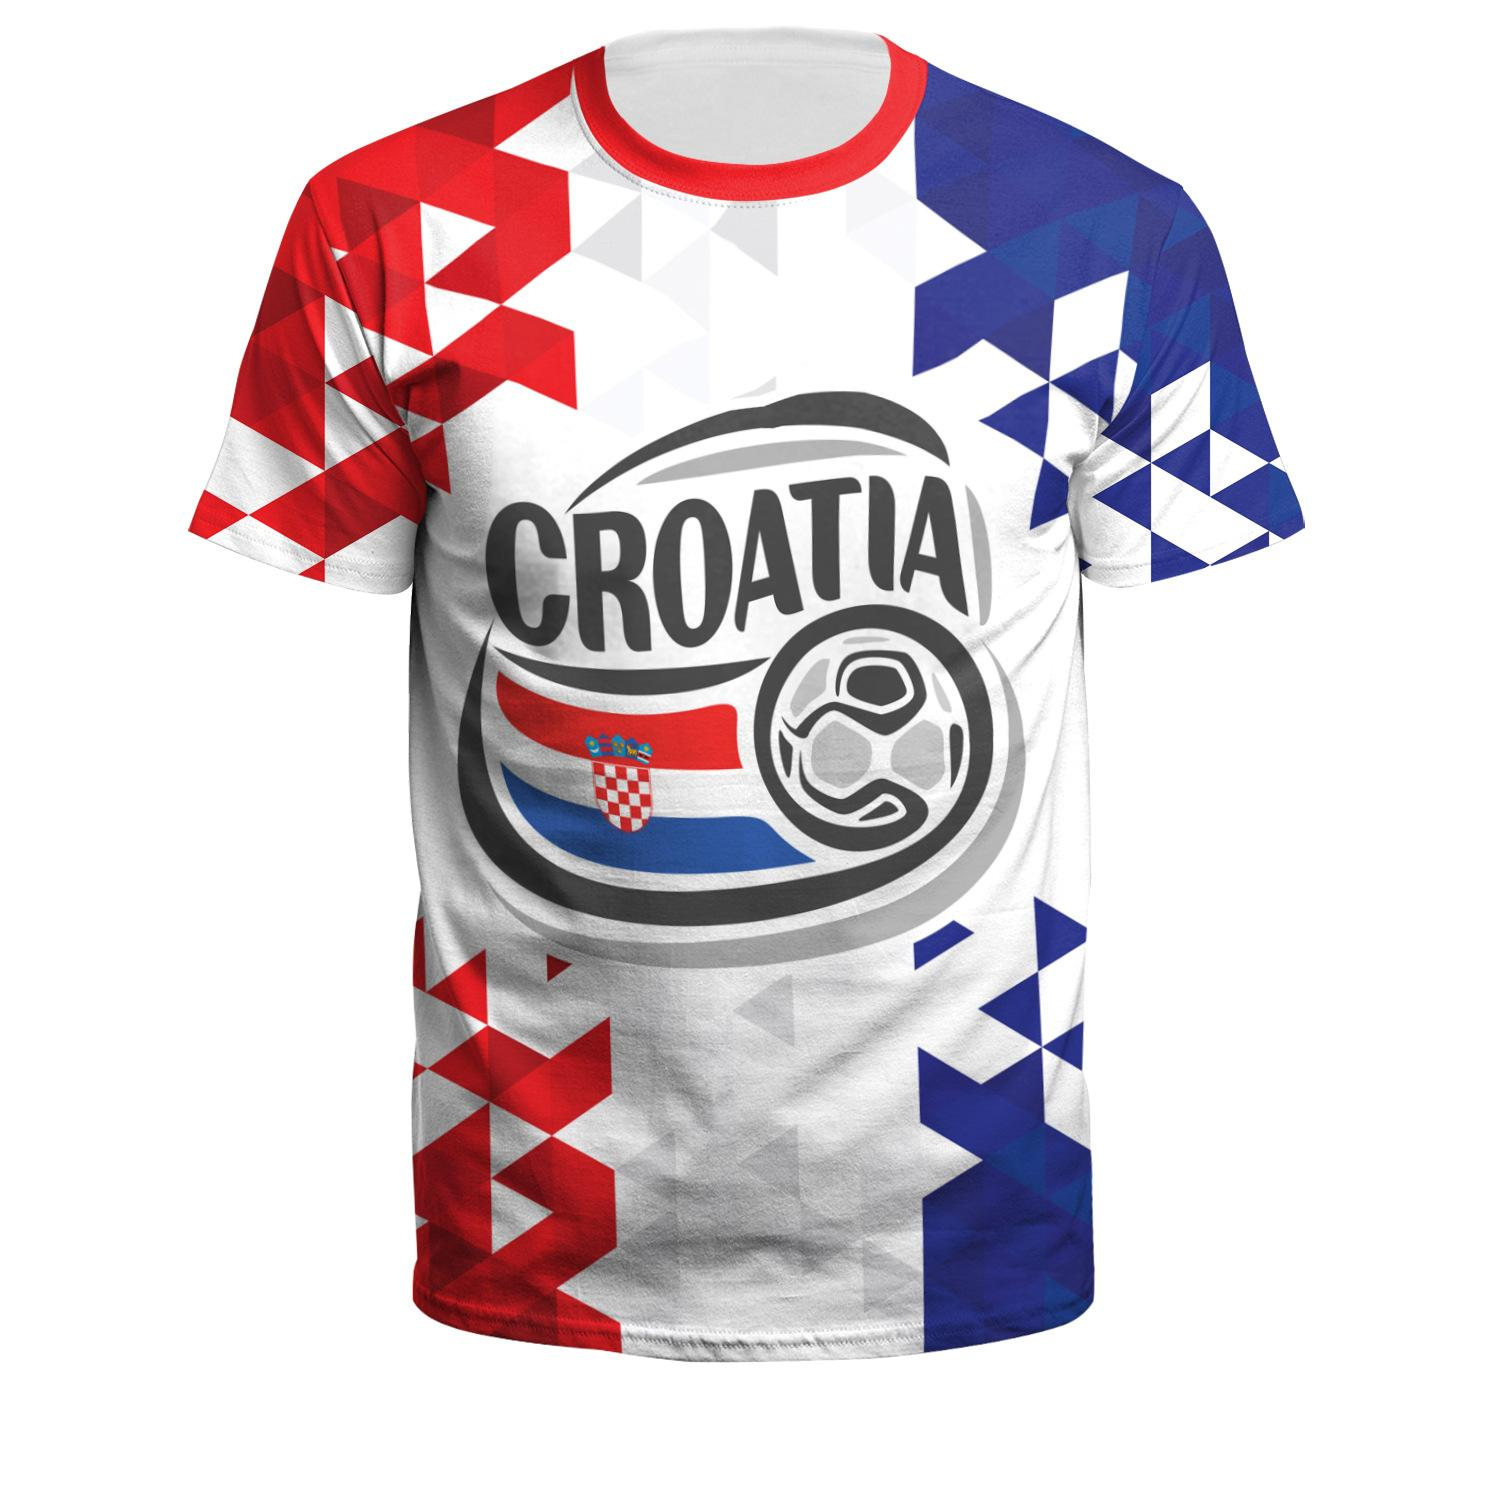 Best selling good quality breathable crew neck unisex tee shirt football t-shirts